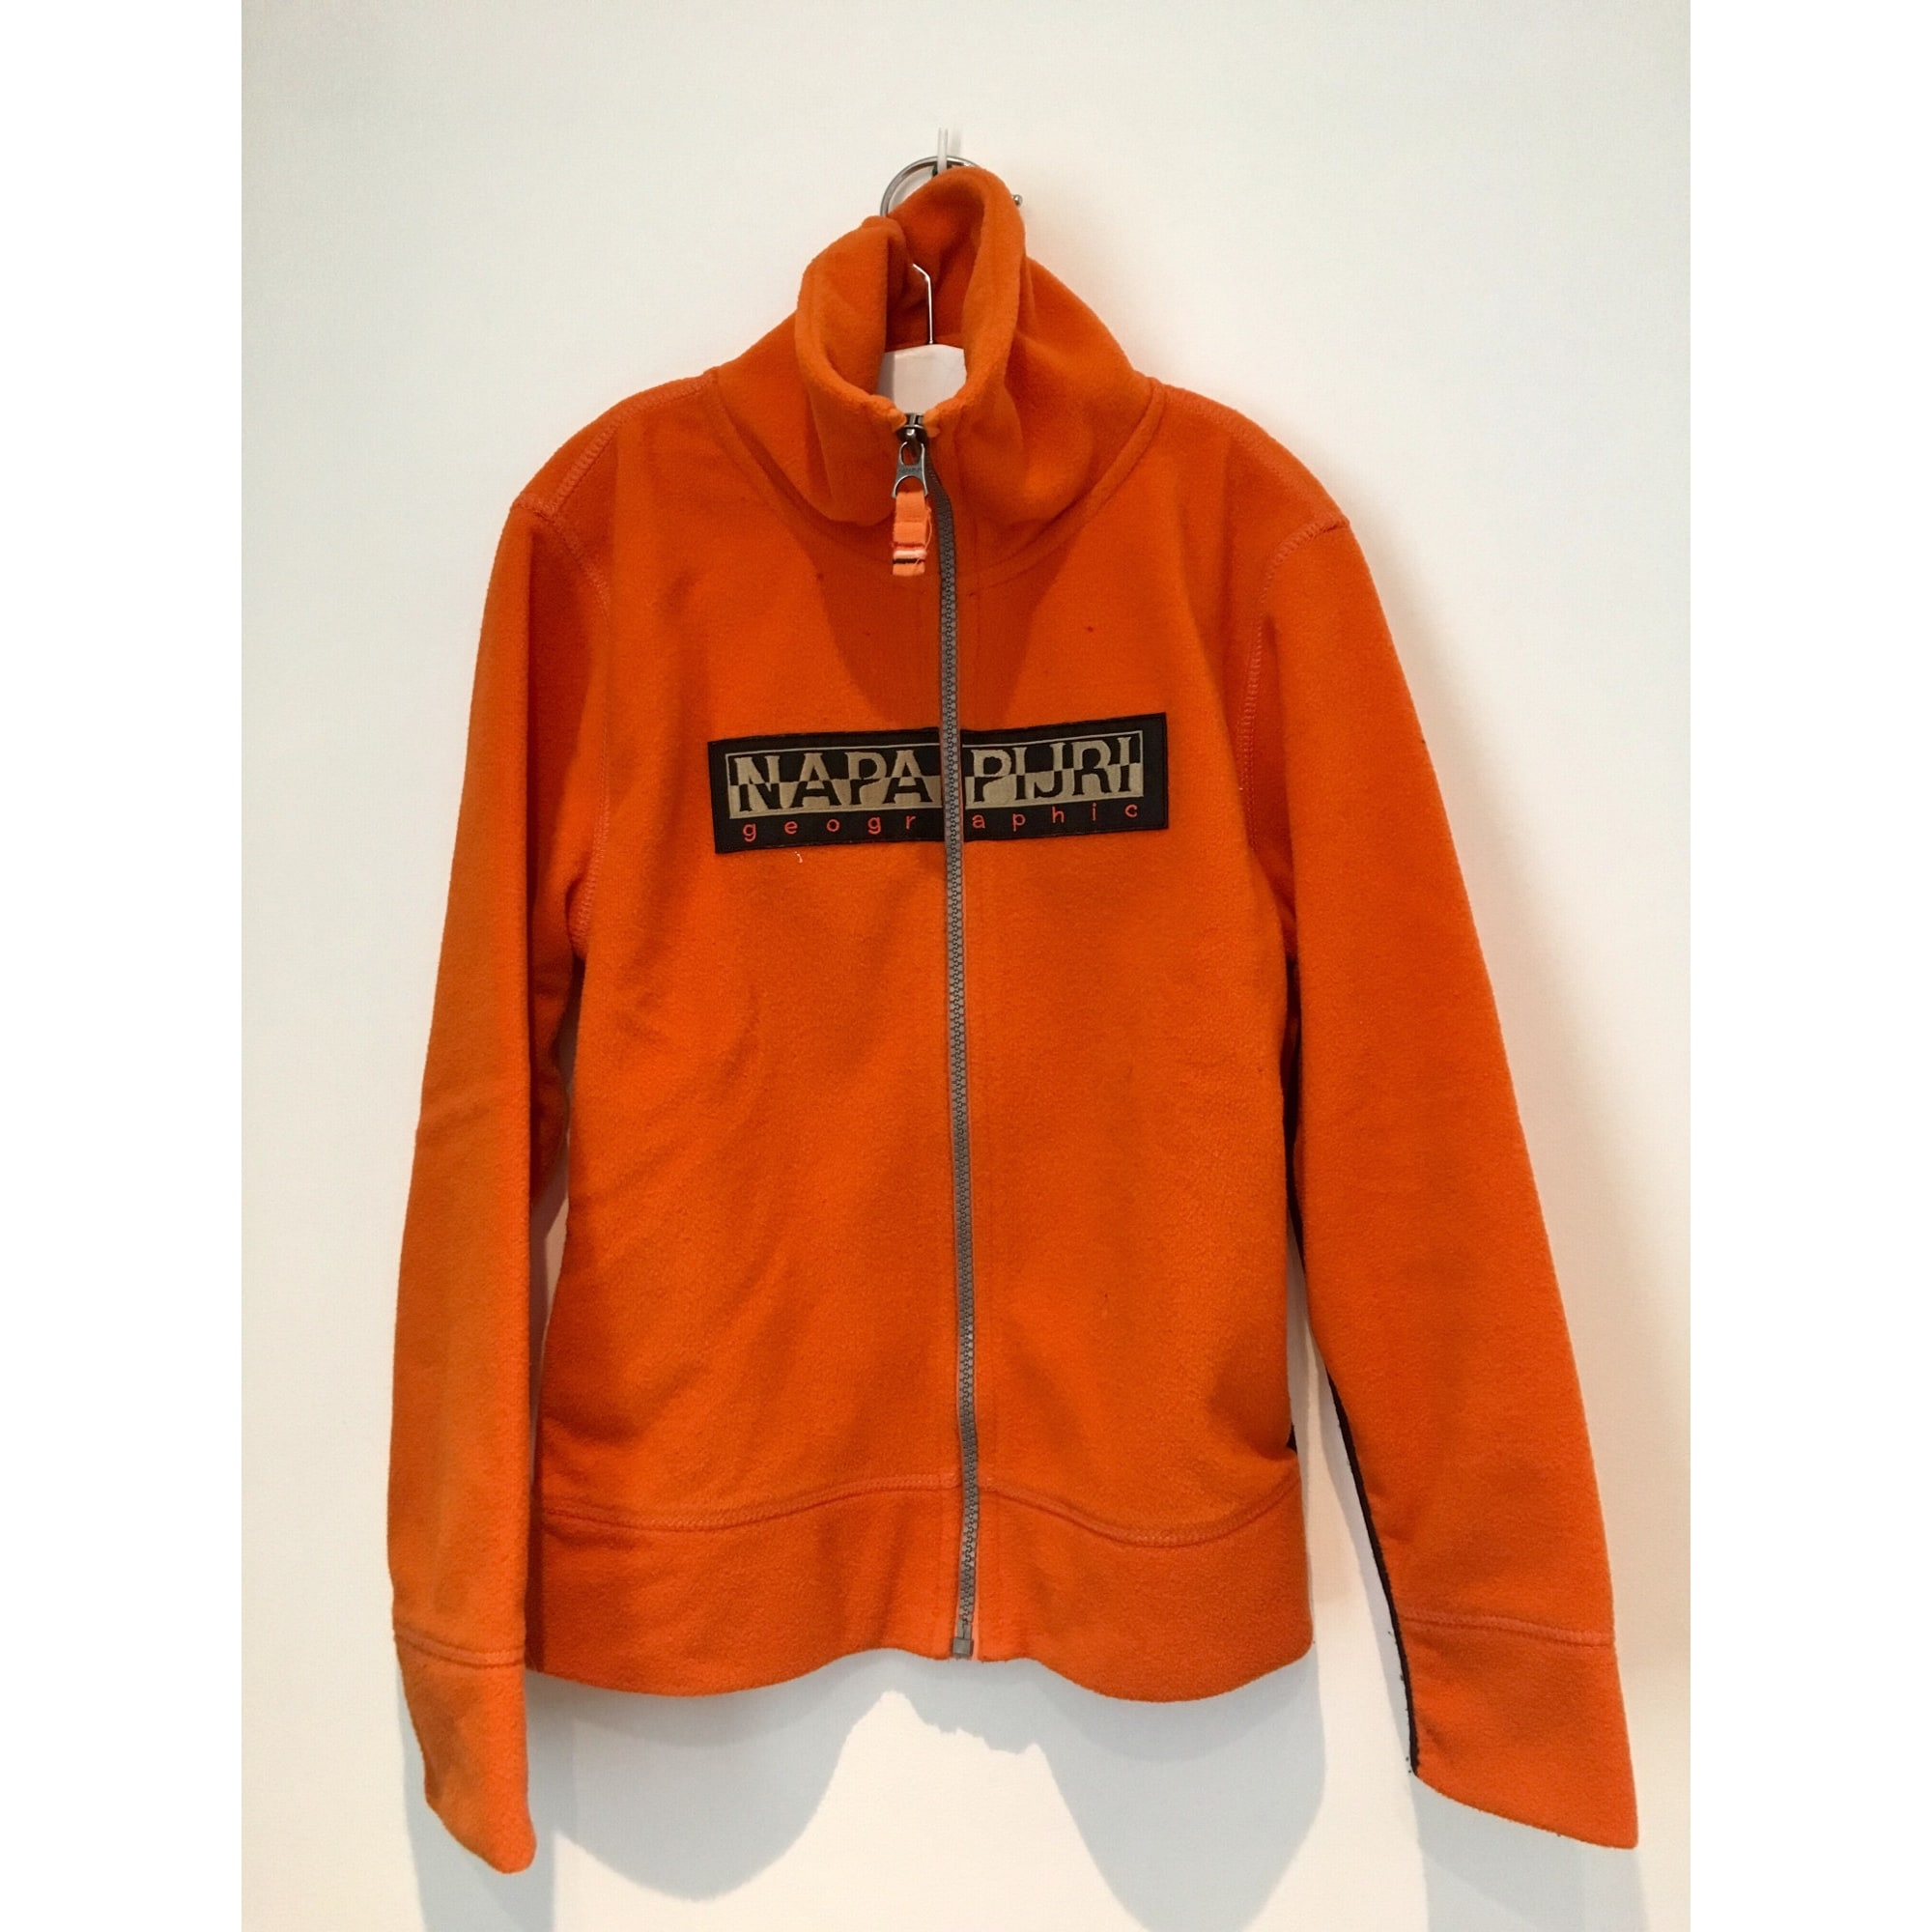 ddeec50ebd0 Polaire NAPAPIJRI 7-8 ans orange - 6648826